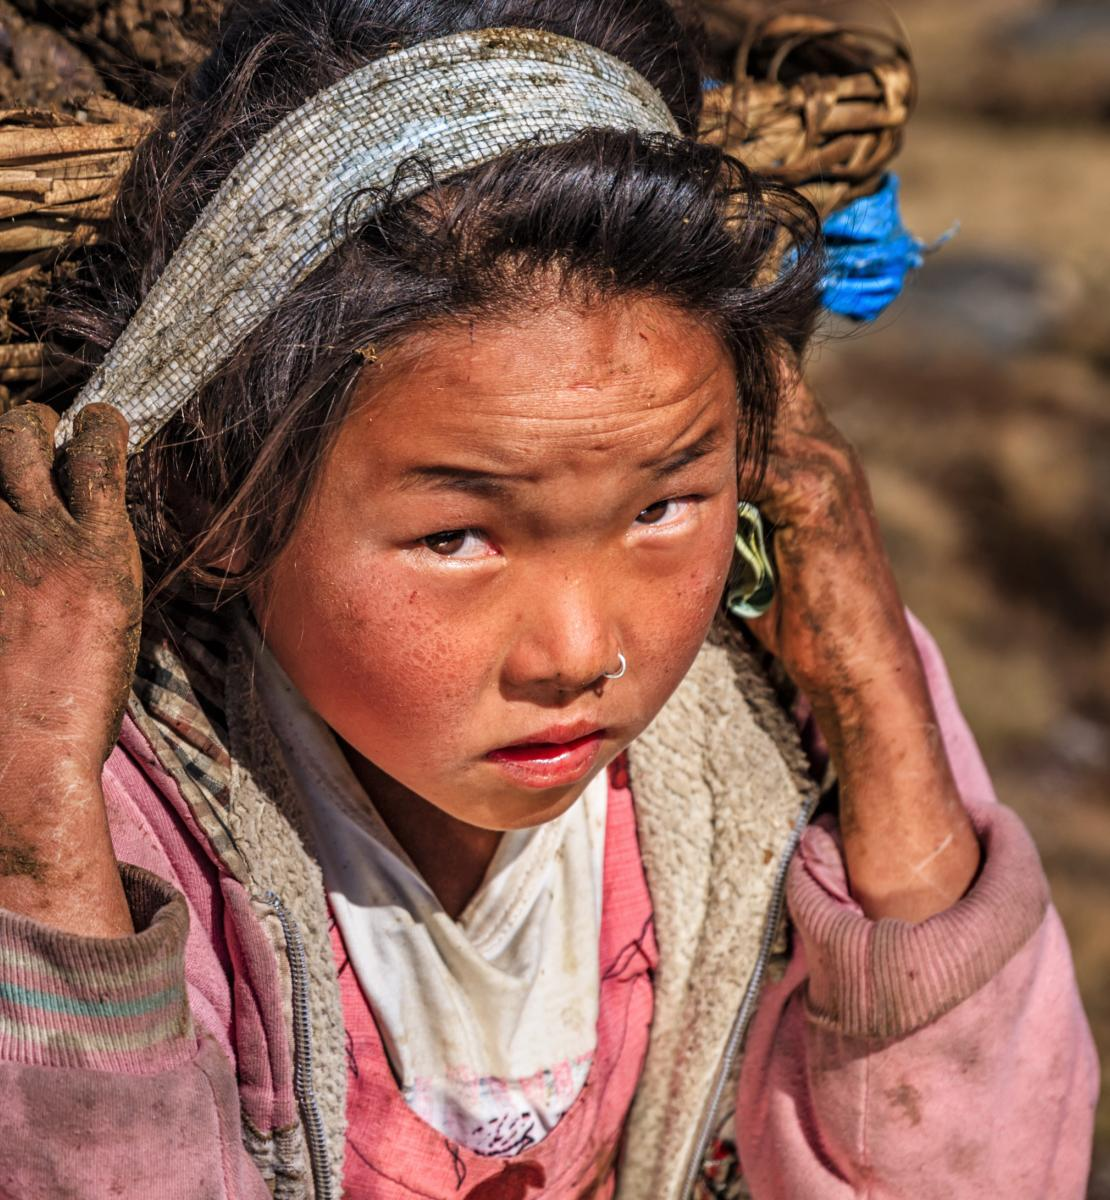 A young girl, with dirt on her hands and face, carries a large basket on her back.